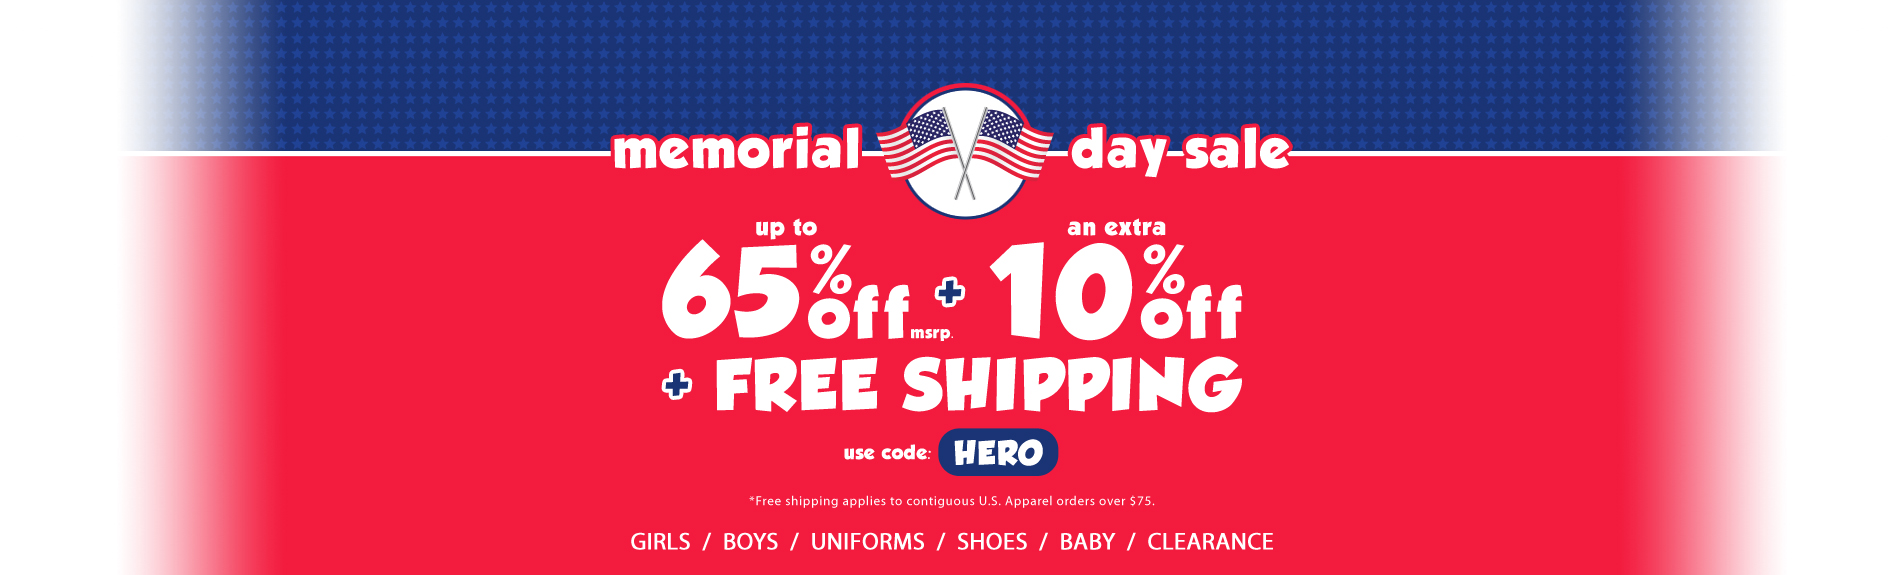 Memorial Day Sale 65% off - use code: hero / expires 5/31/2016 11:59am PST - Shop Now!